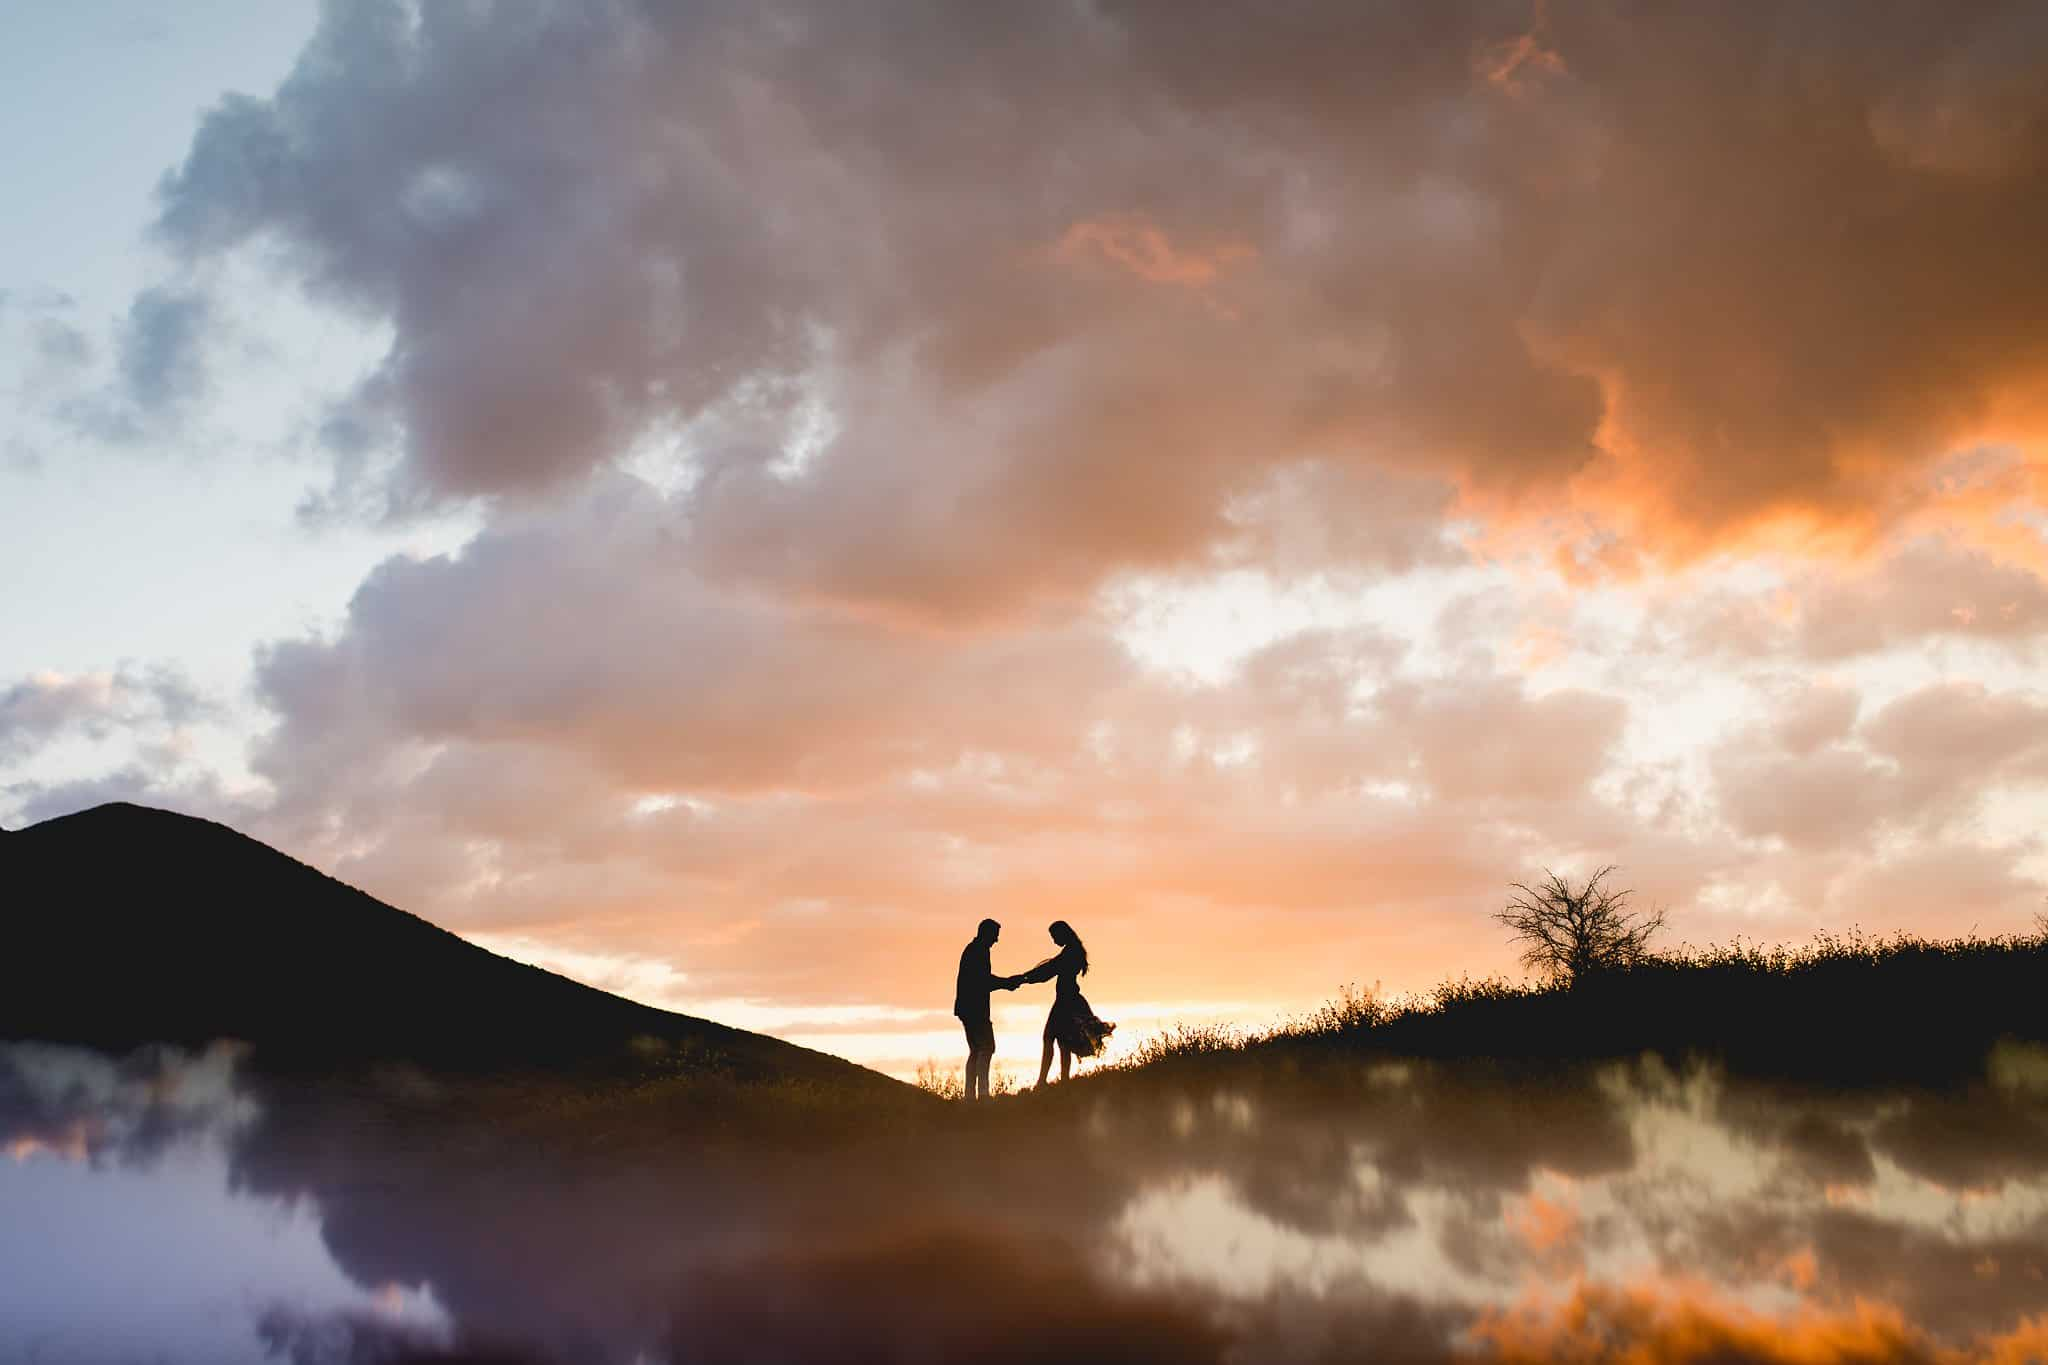 Couple Poses dancing as a silhouette during sunset